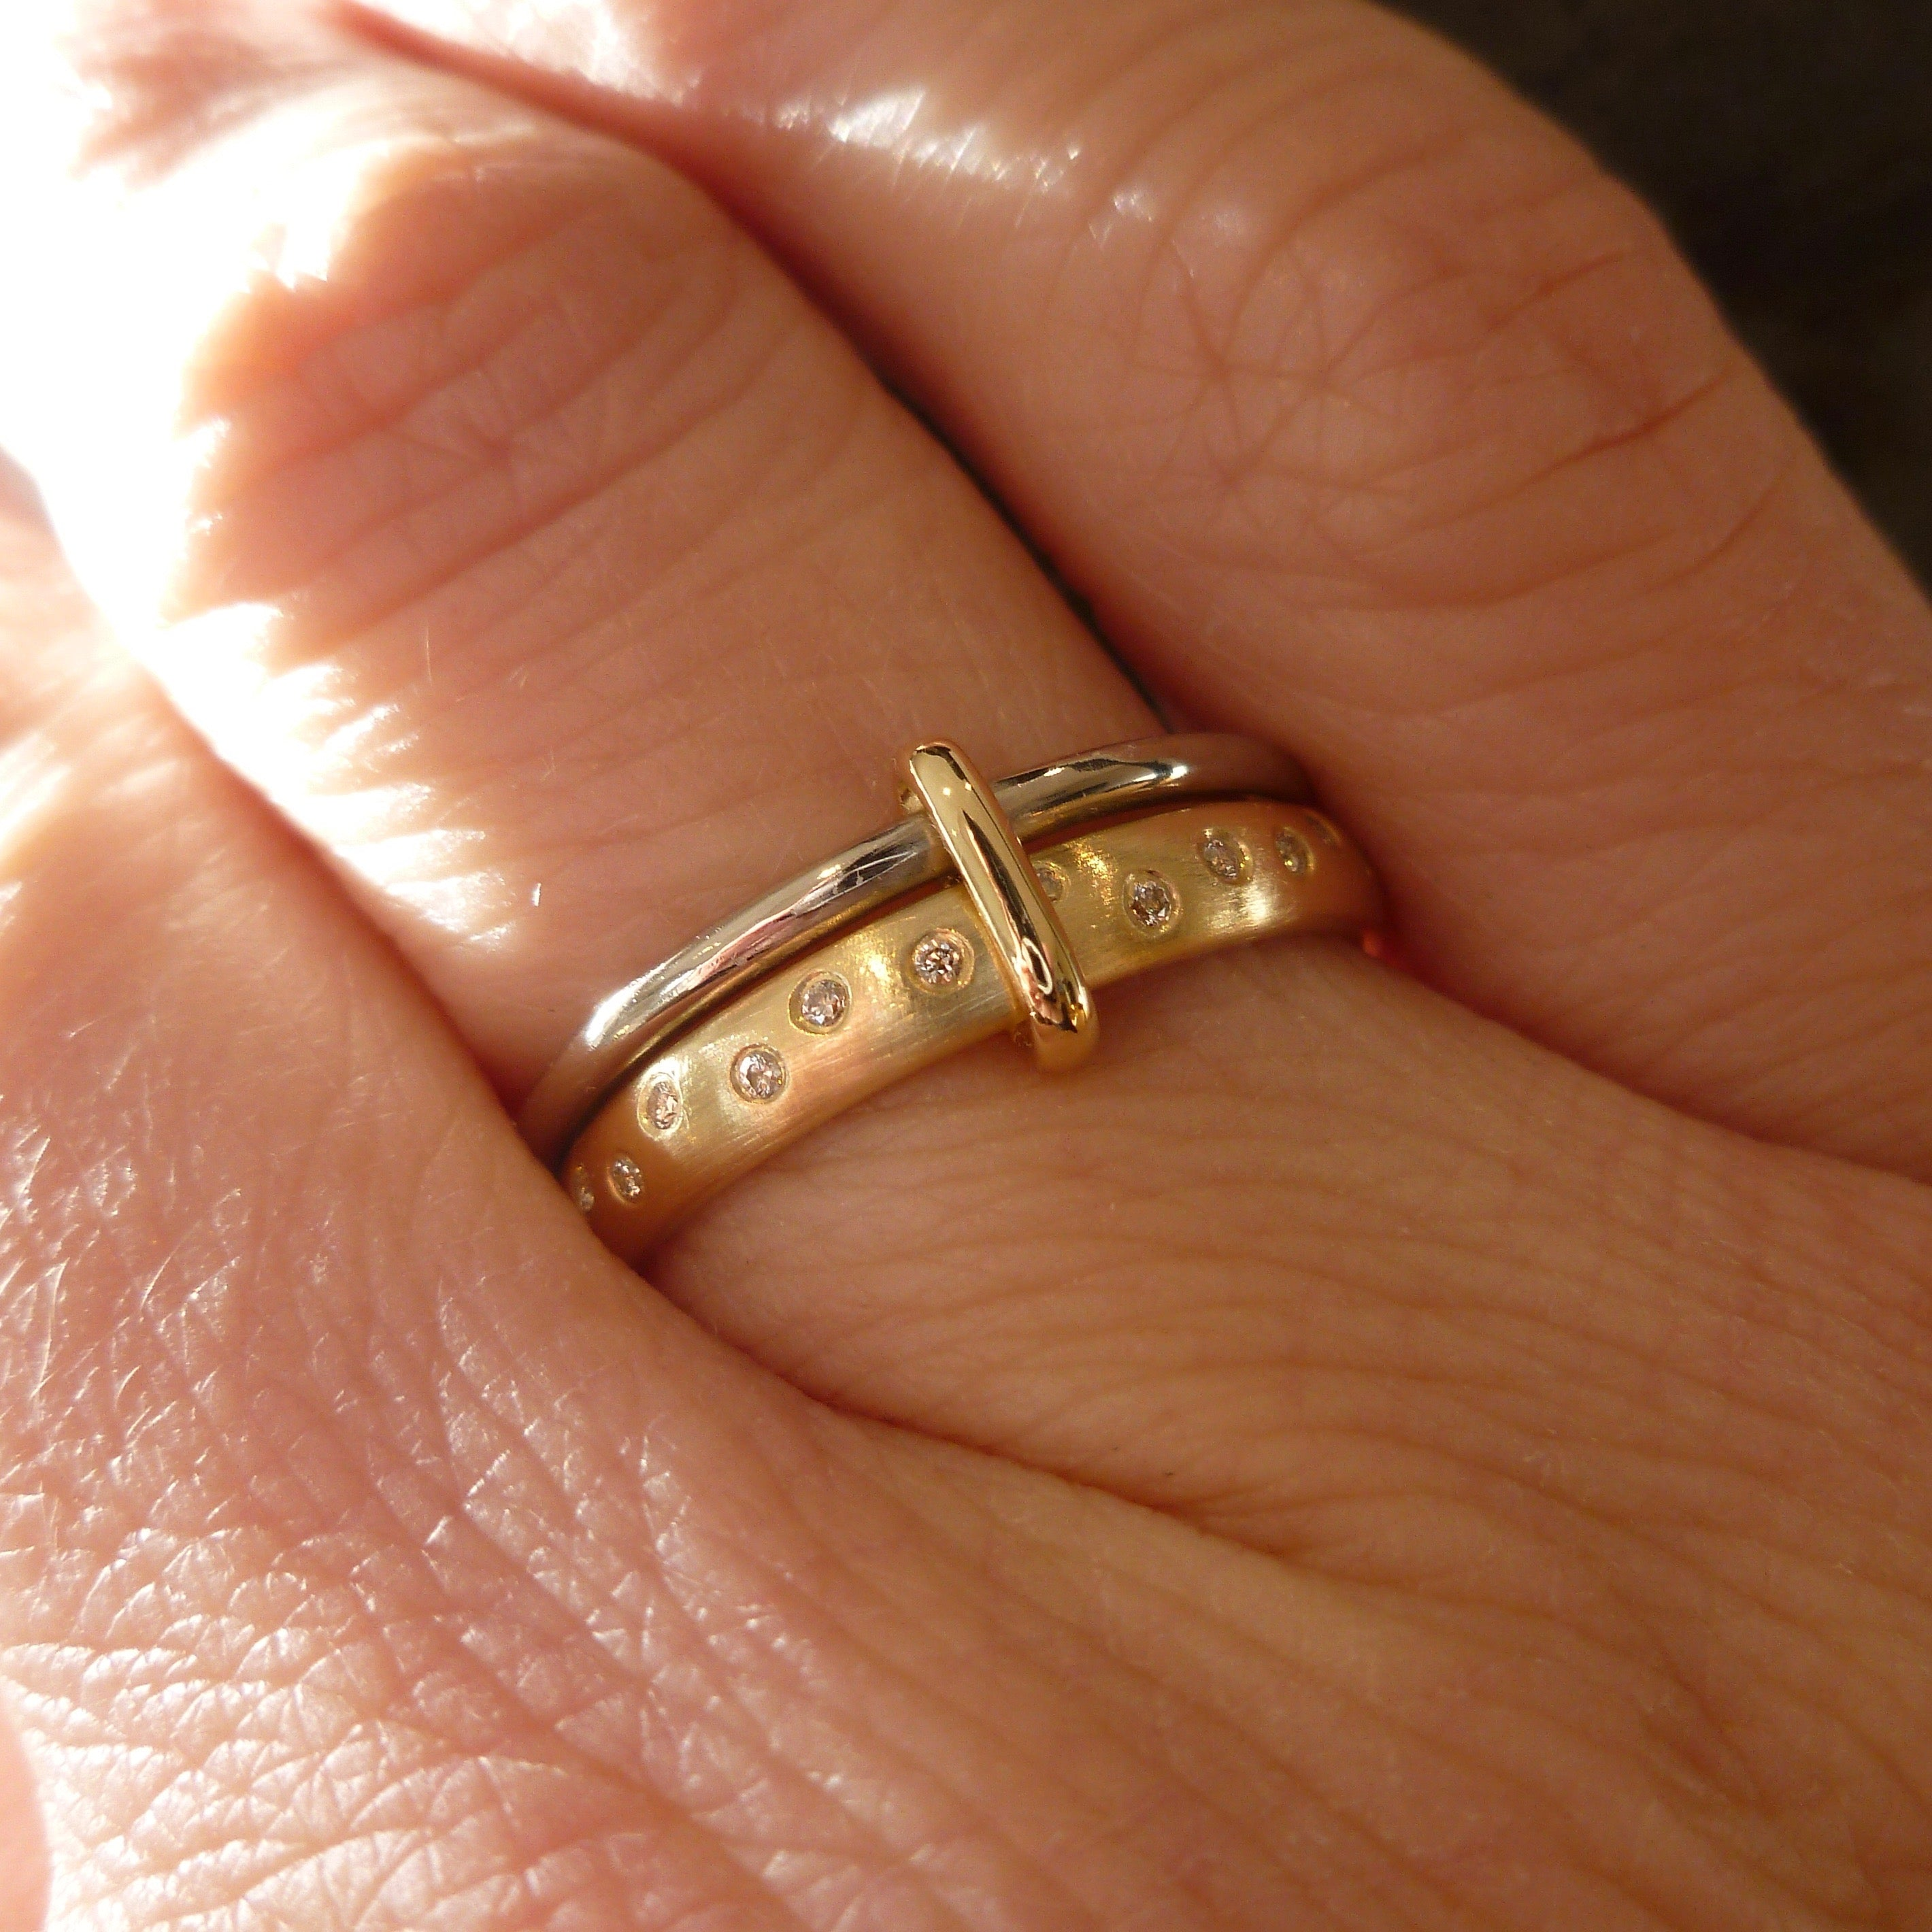 artemer products hand geometric on band dainty pattern rings everyday ring gold wedding